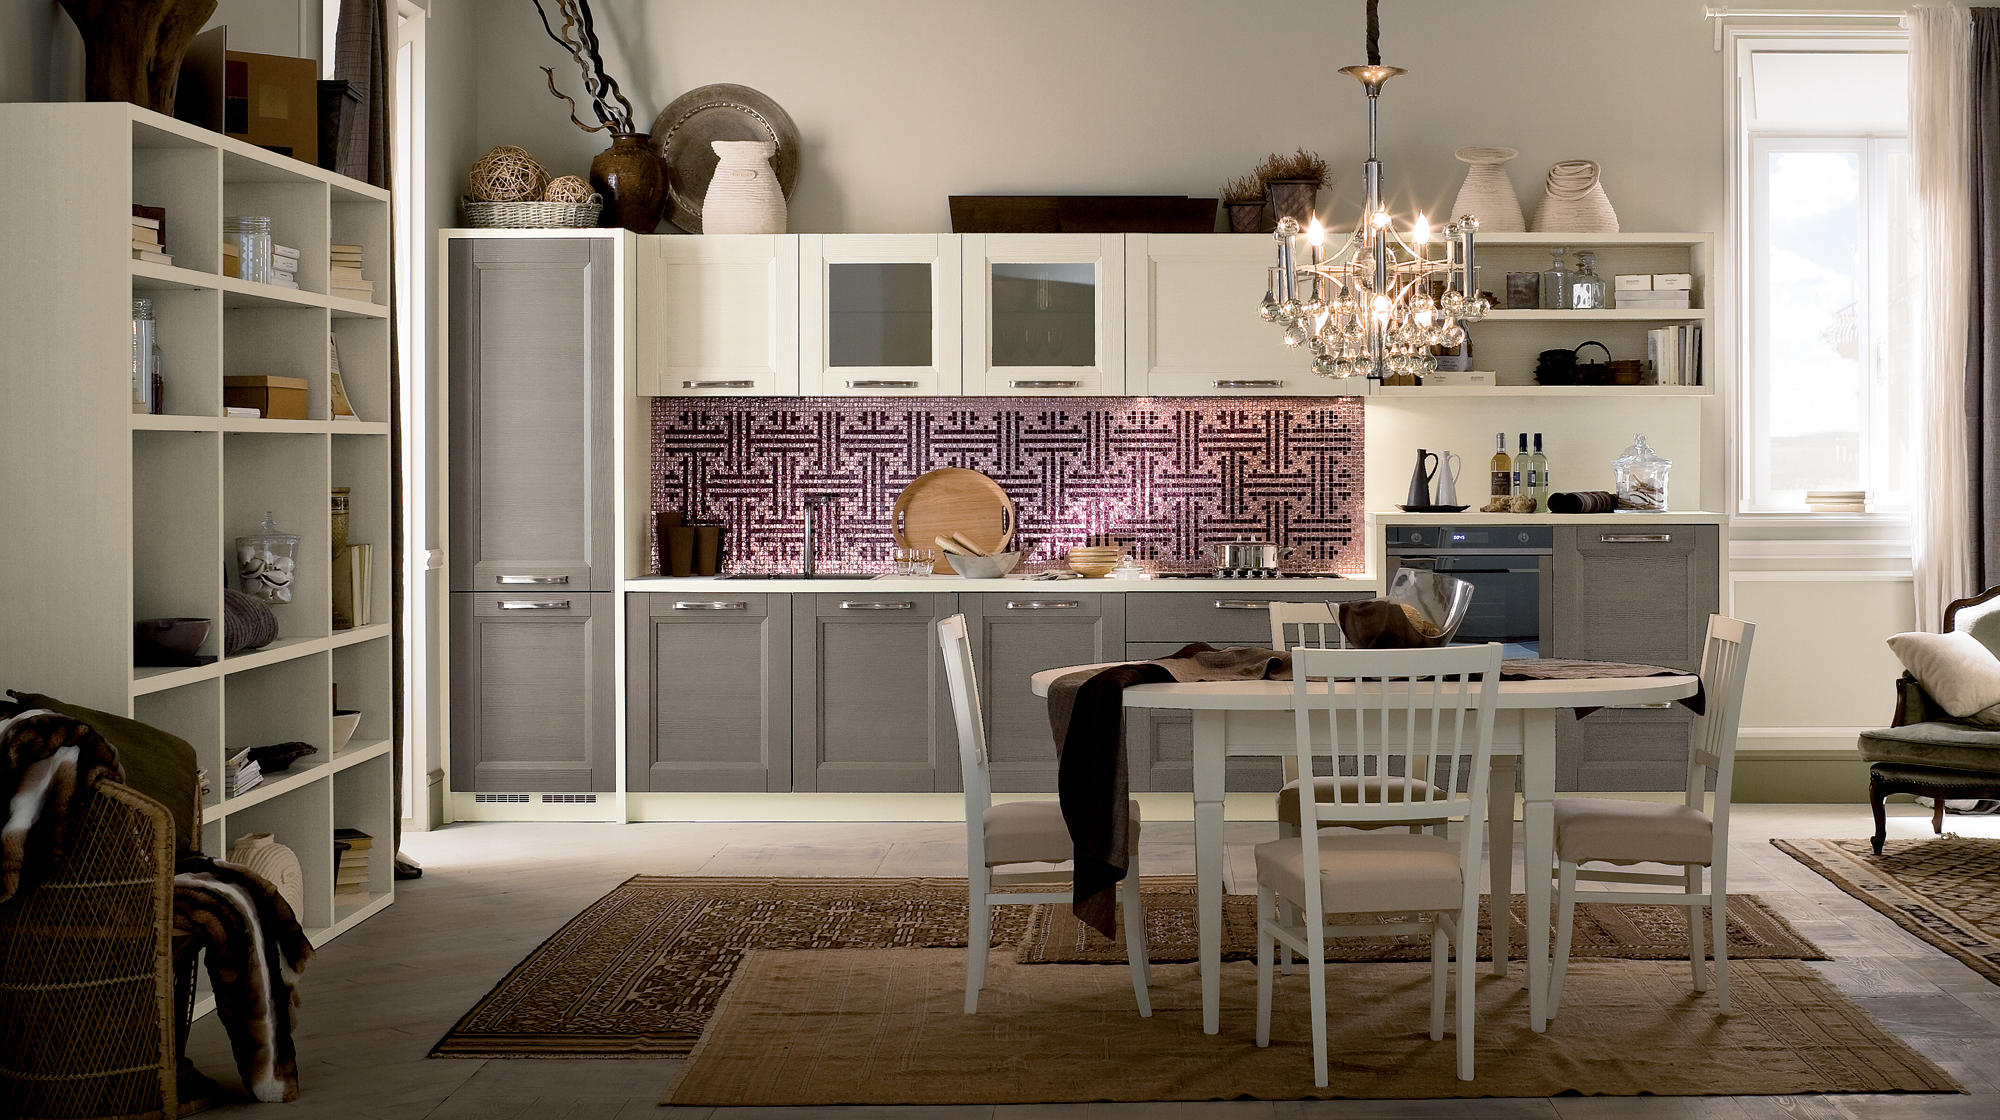 Cucina Veneta Shabby Vintage Fitted Kitchens From Veneta Cucine Architonic